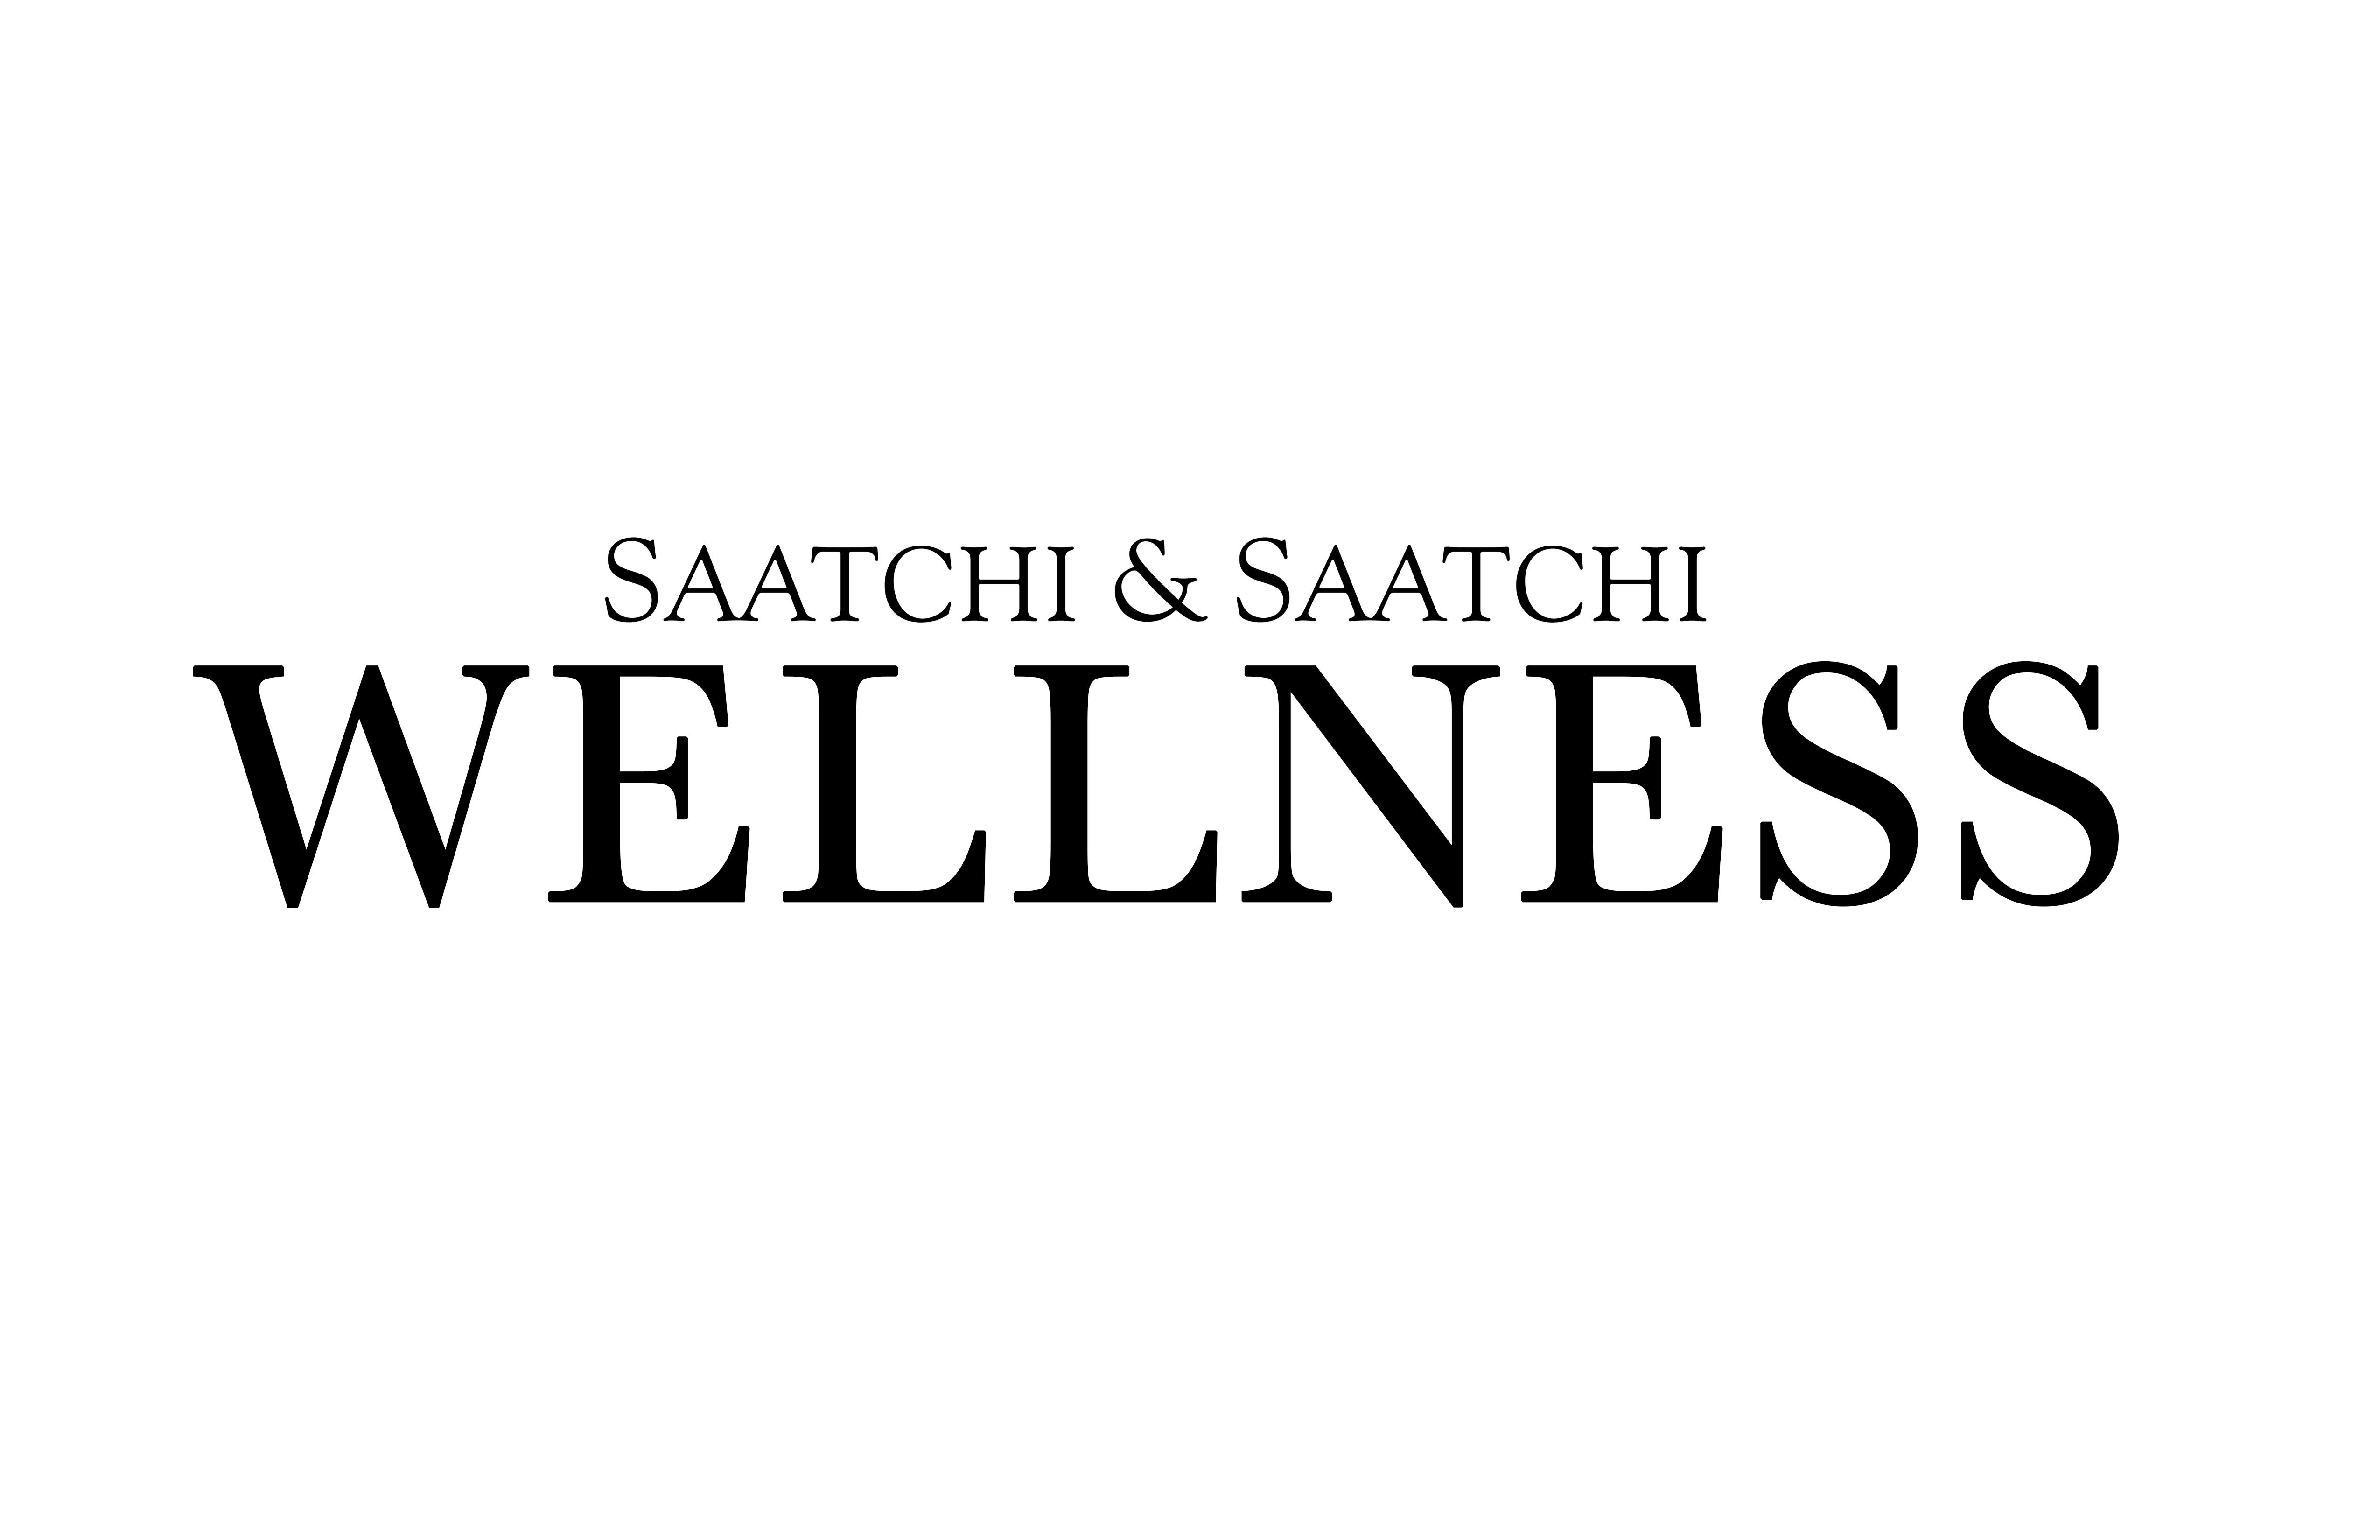 Saatchi & Saatch Wellness